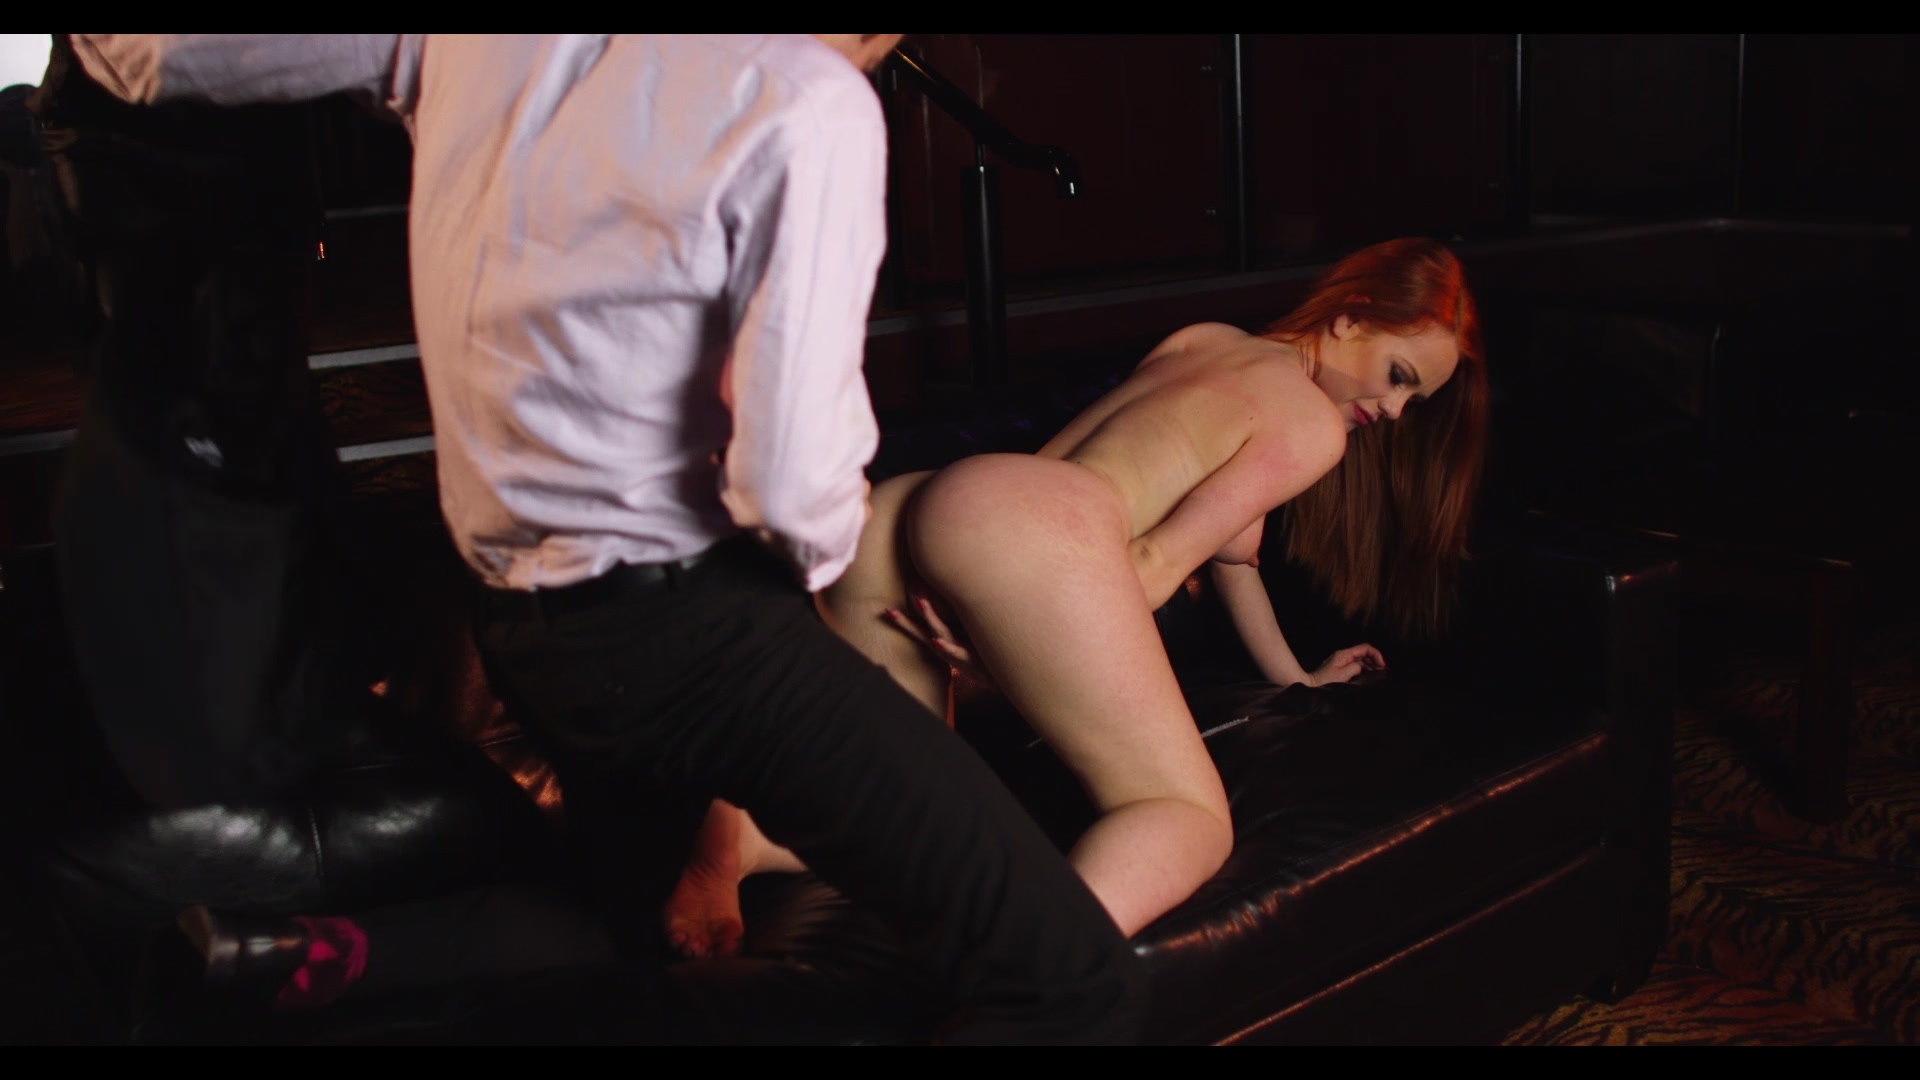 Scene with Ella Hughes - image 9 out of 20